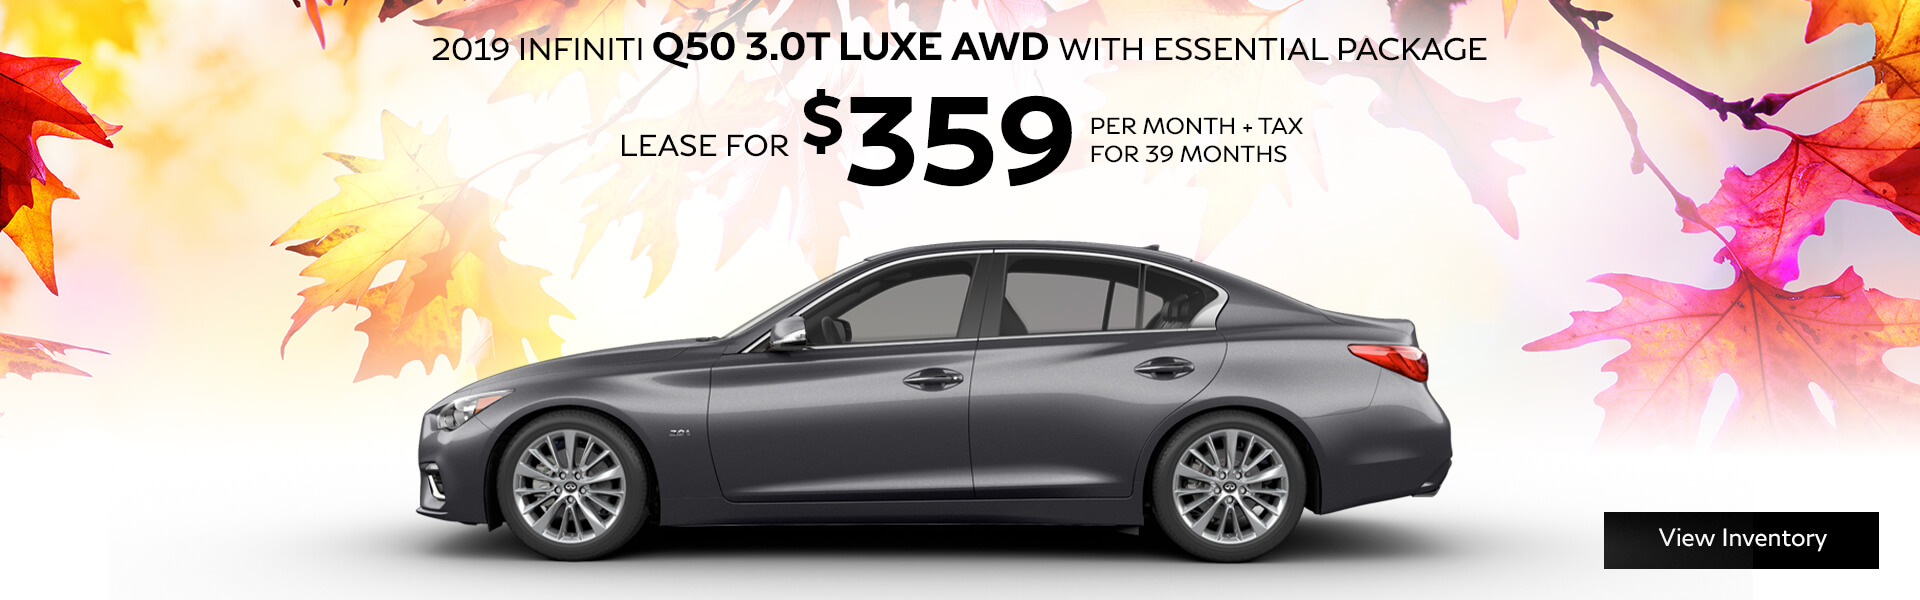 Q50 - Lease for $359